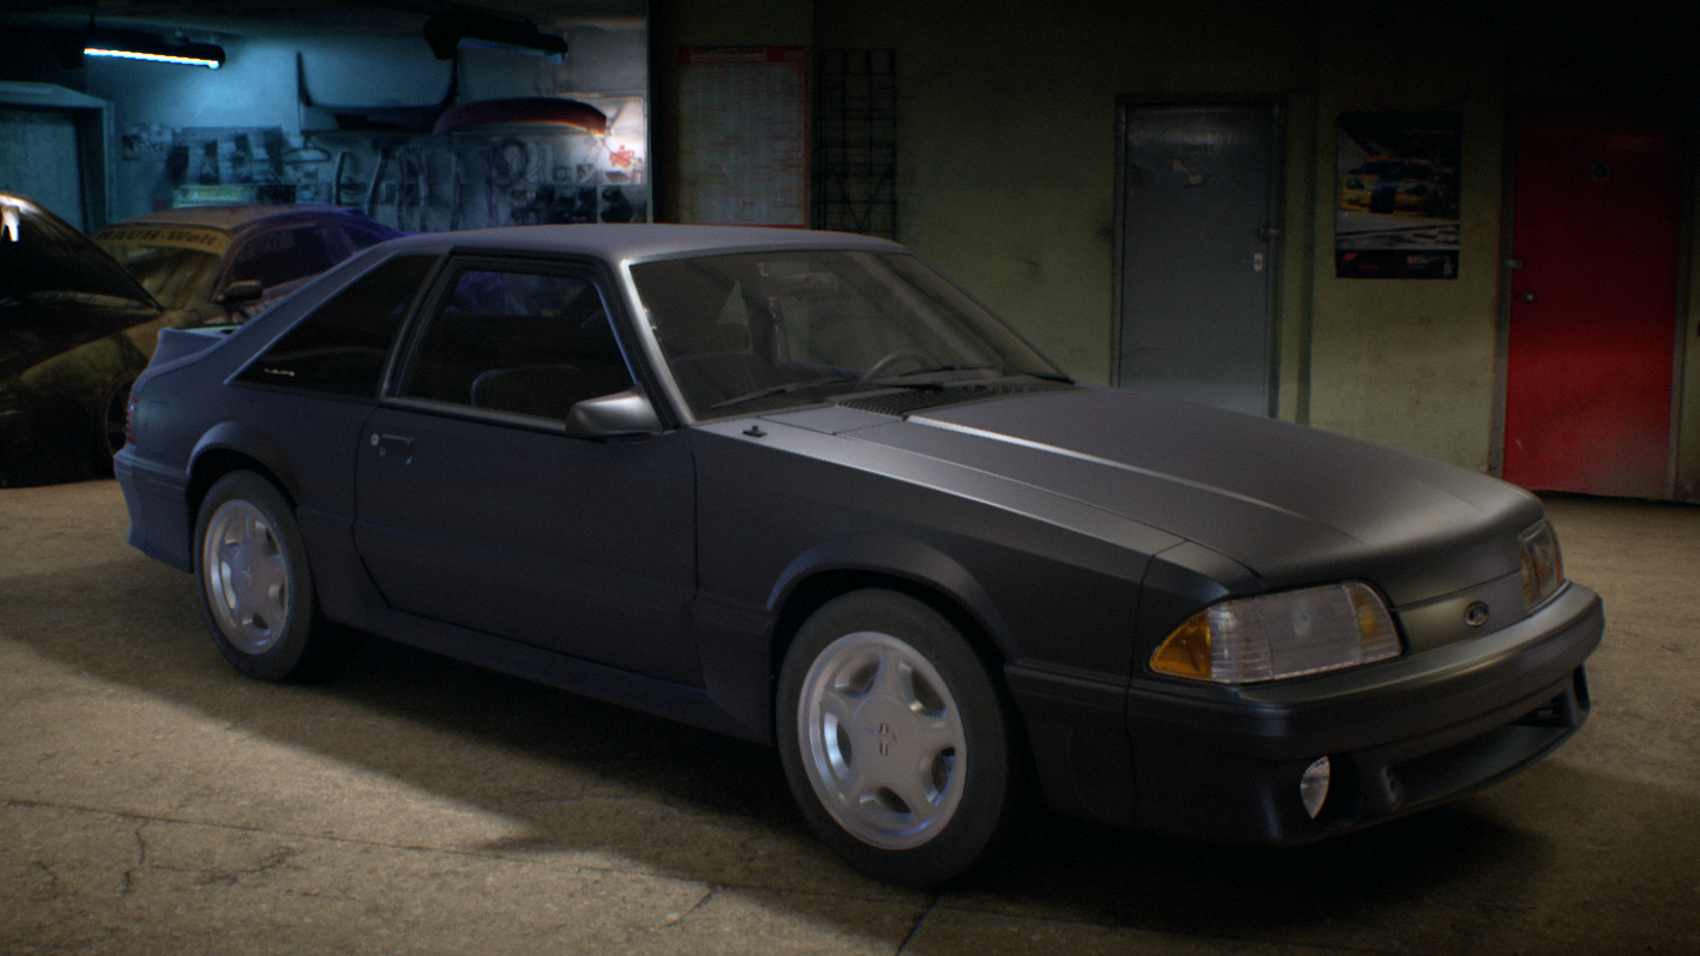 Ford mustang gt gen 3 need for speed wiki fandom powered by wikia